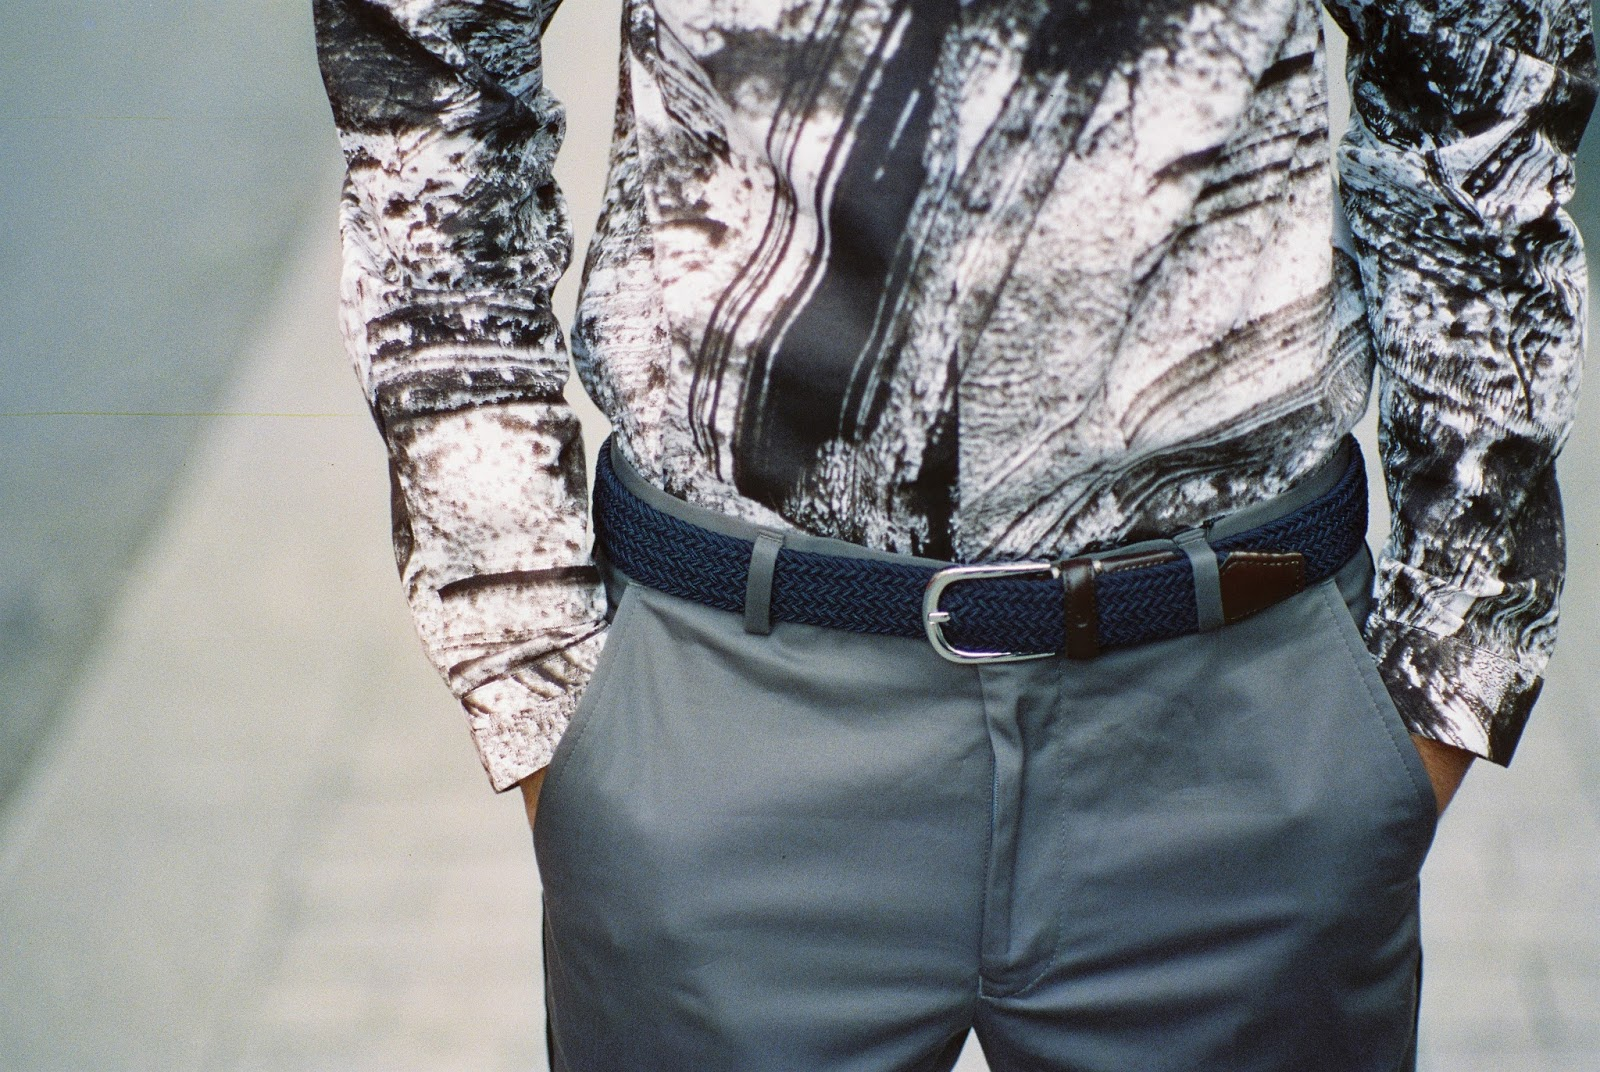 Salman Dean Wearing A Brydon Brothers Belt